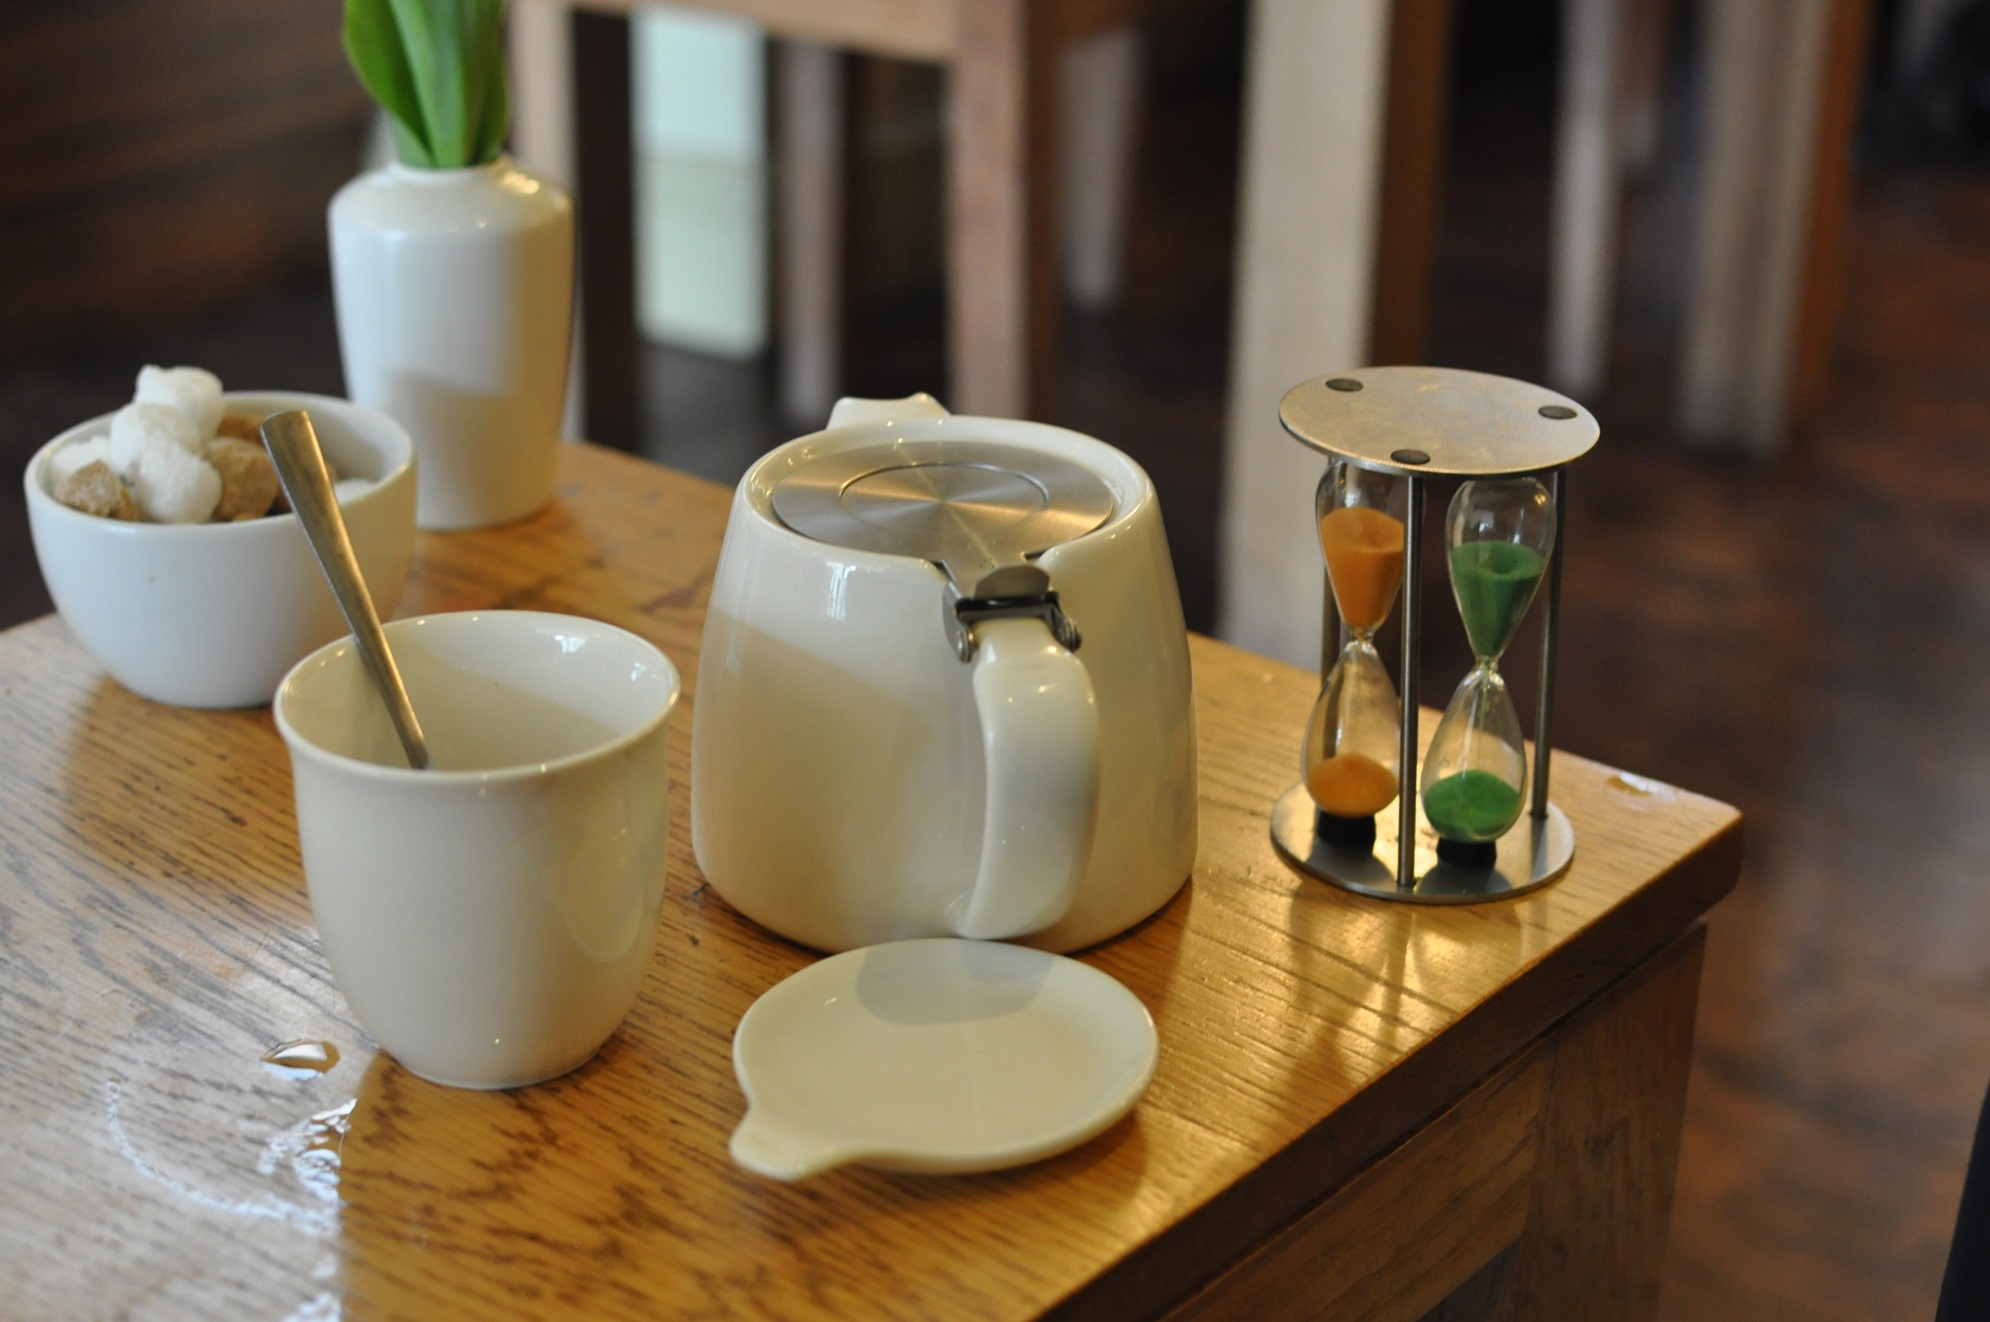 A teapot brewing at Waterloo tea with dual egg timers (one orange, one green; what tea you have determines which one you use)